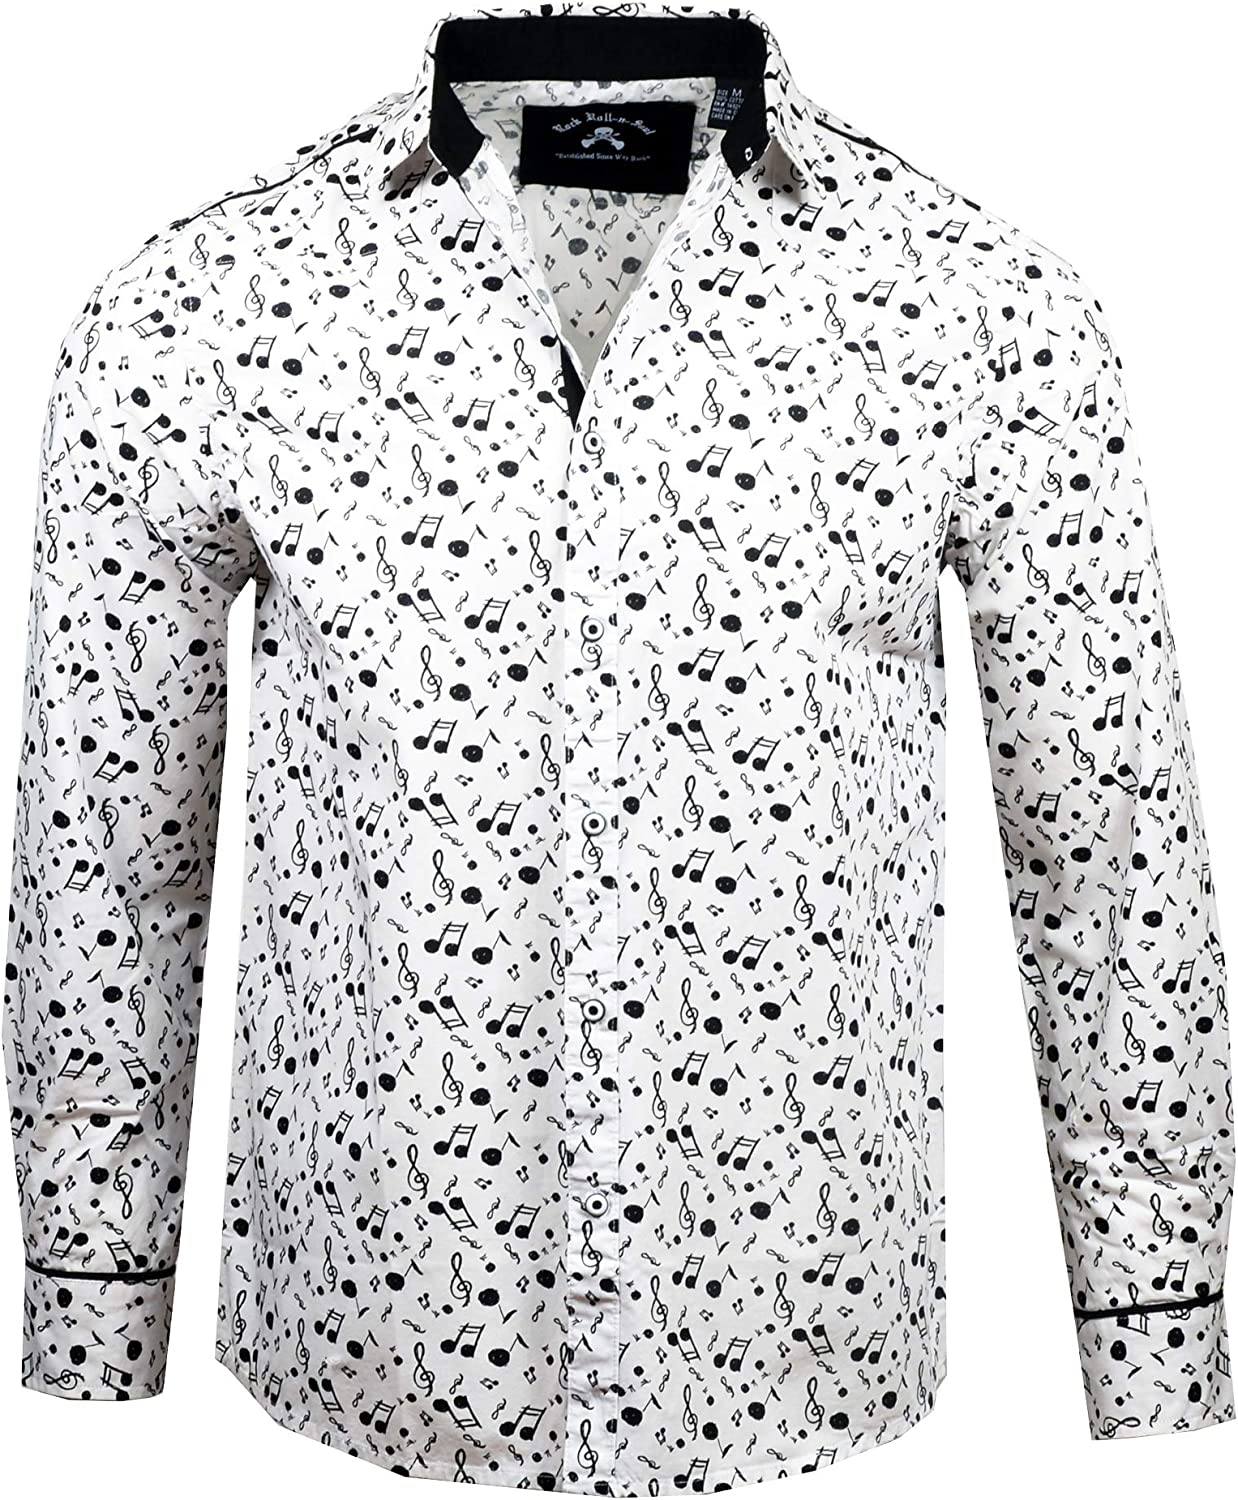 Rock Roll n Soul Men's Fashion Music on My Mind Patterned Long Sleeve Button-Up Shirt